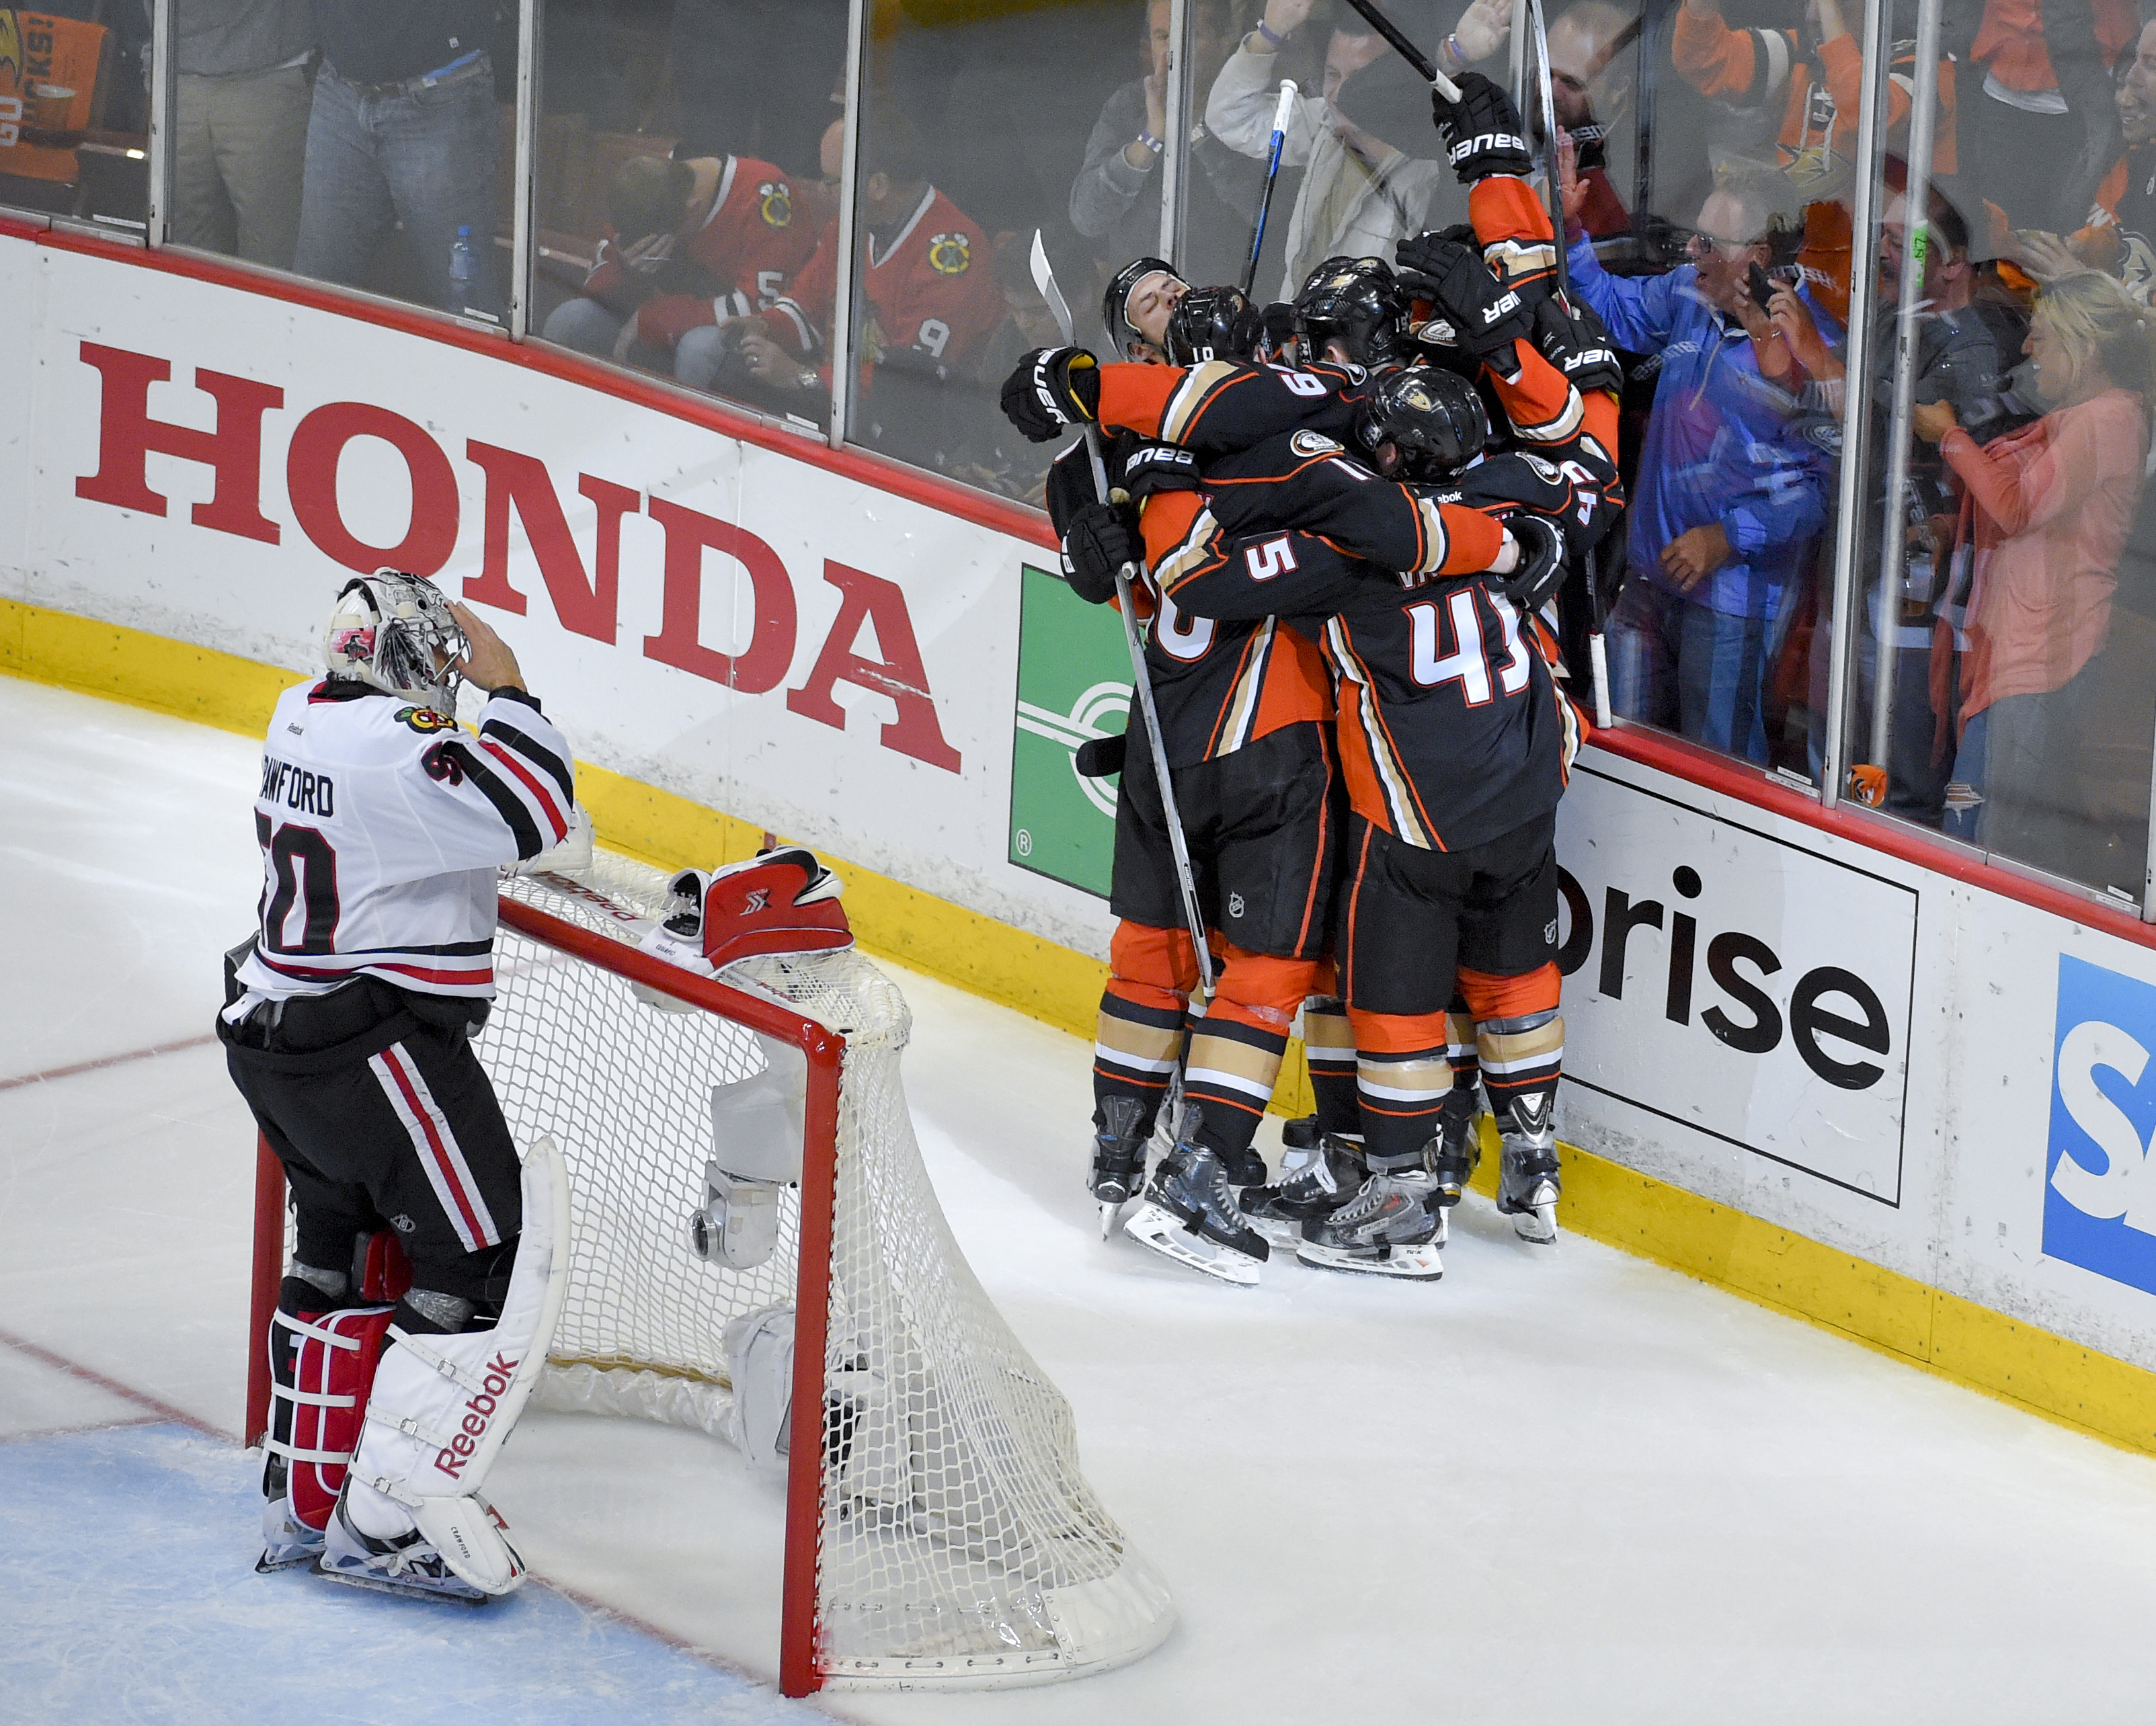 Members of the Anaheim Ducks celebrates Patrick Maroon's goal as Chicago Blackhawks goalie Corey Crawford looks on during the third period in Game 5 of the Western Conference final of the NHL hockey Stanley Cup playoffs in Anaheim, Calif., Monday, May 25,